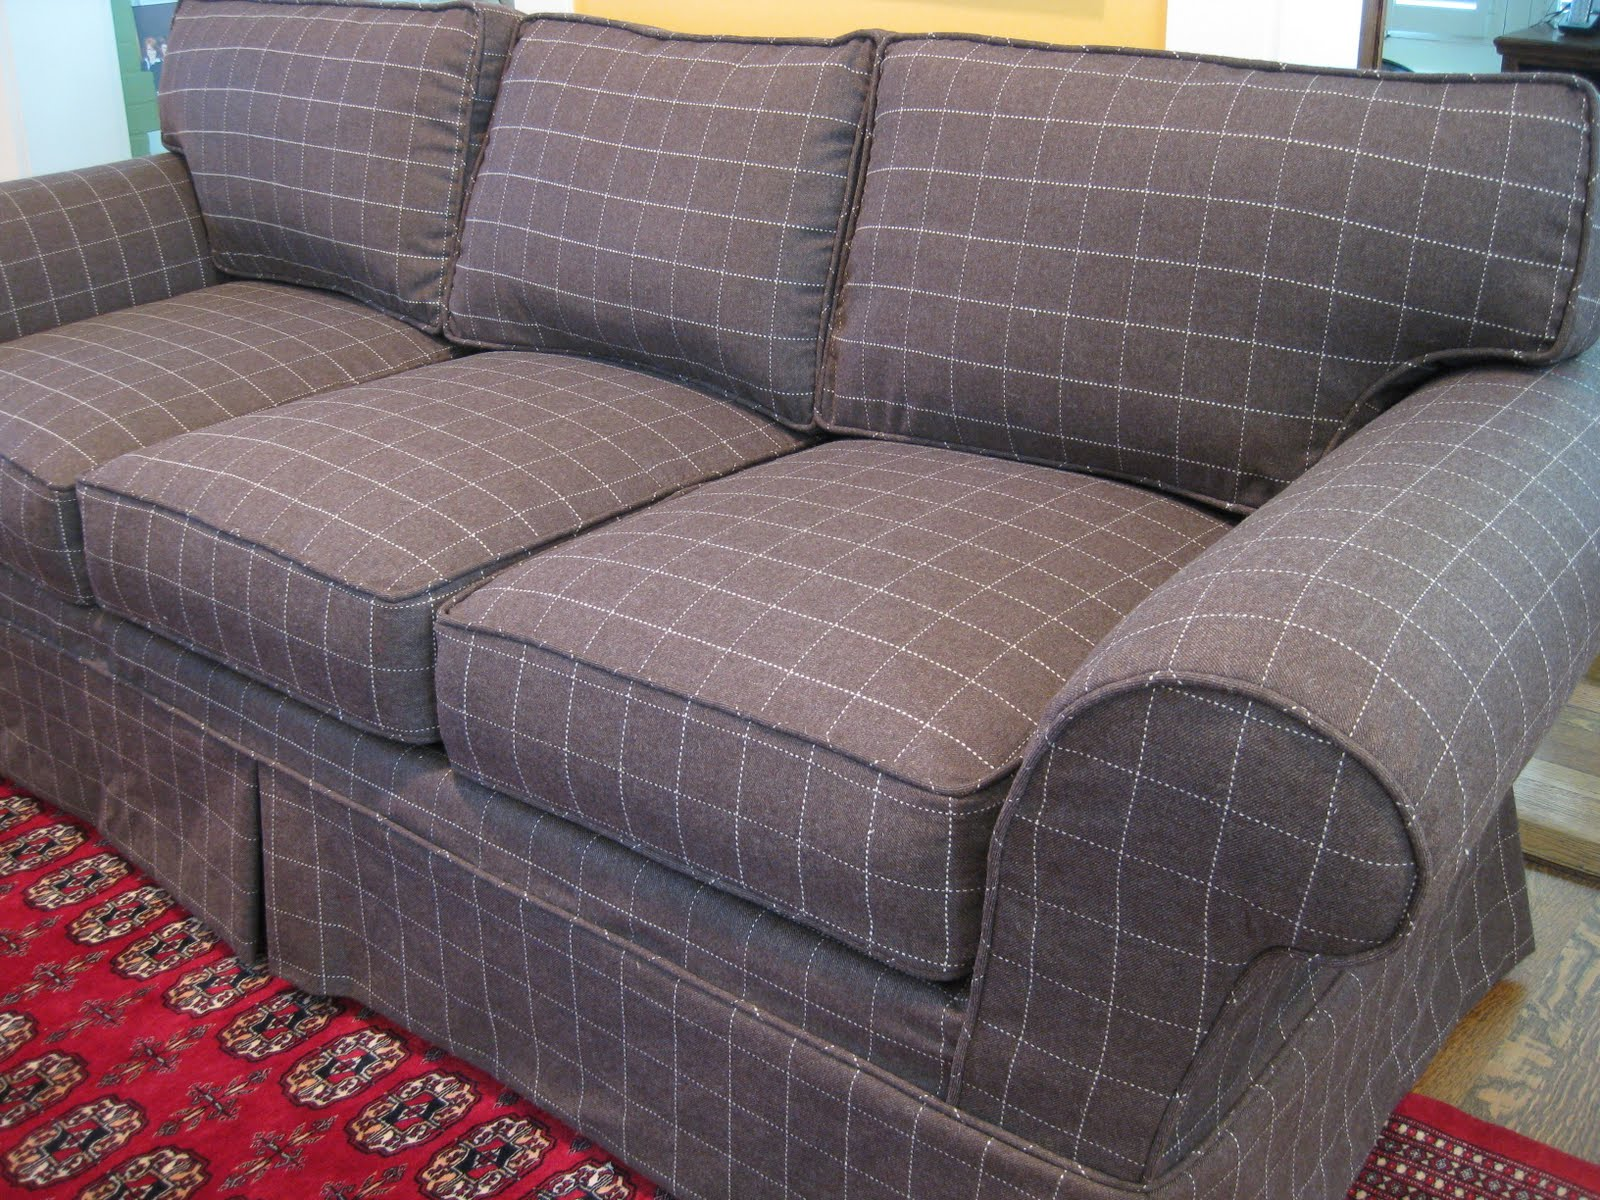 Menswear Wool couch - Slipcovers by Shelley ef55a094bd8c